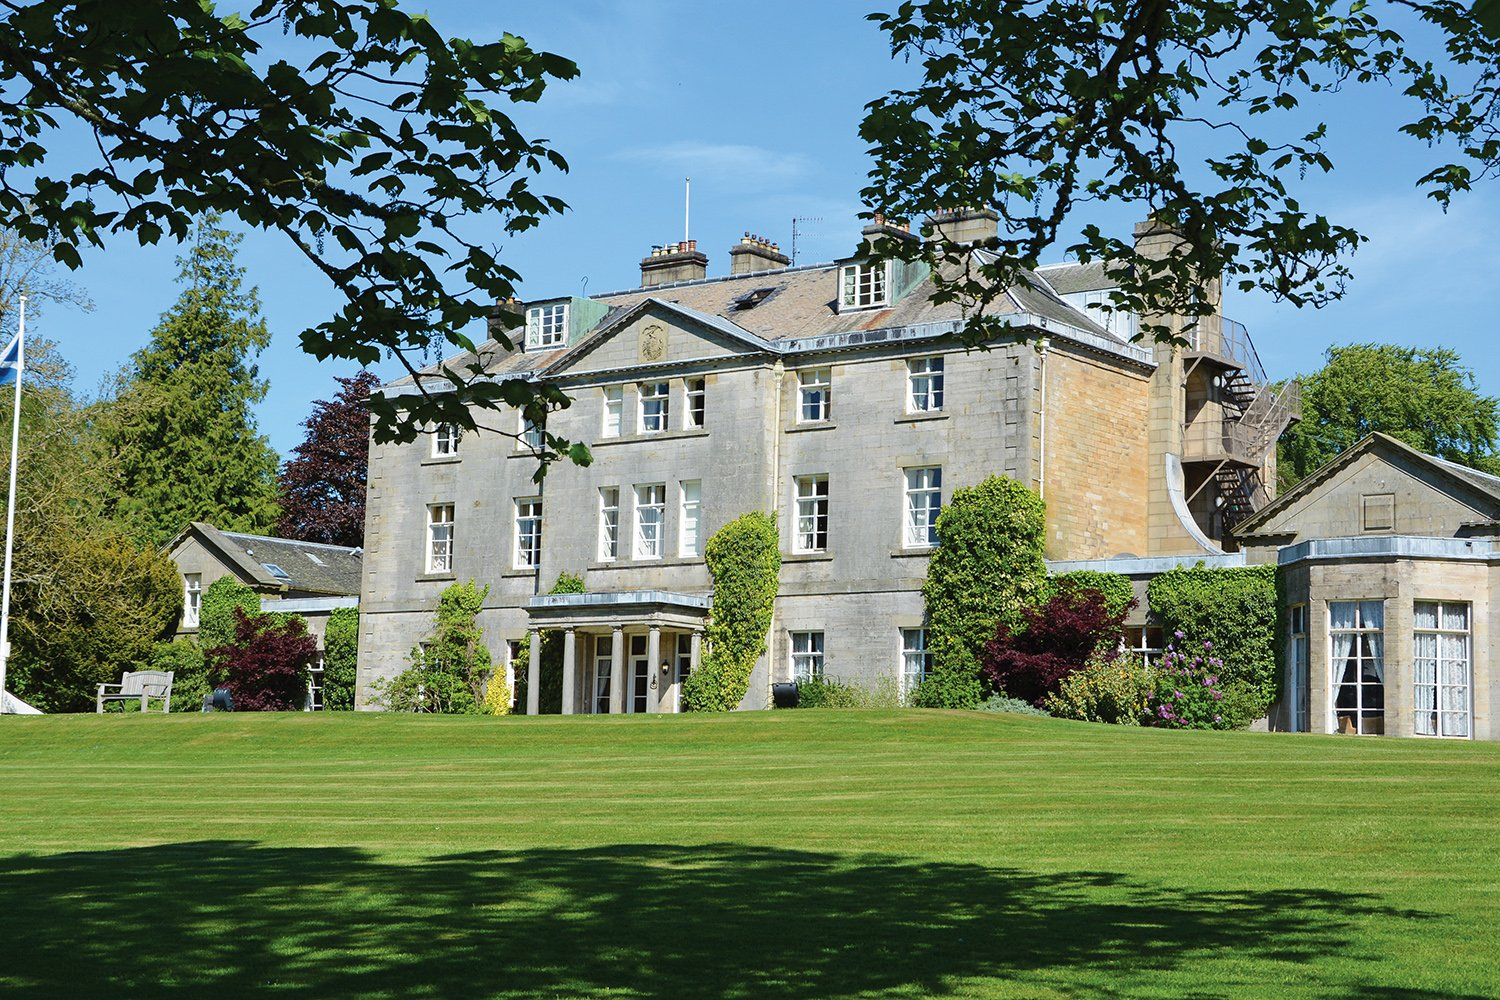 Castle Craig Hospital is located in the stunning countryside of the Scottish Borders, just 40 minutes' drive from Edinburgh